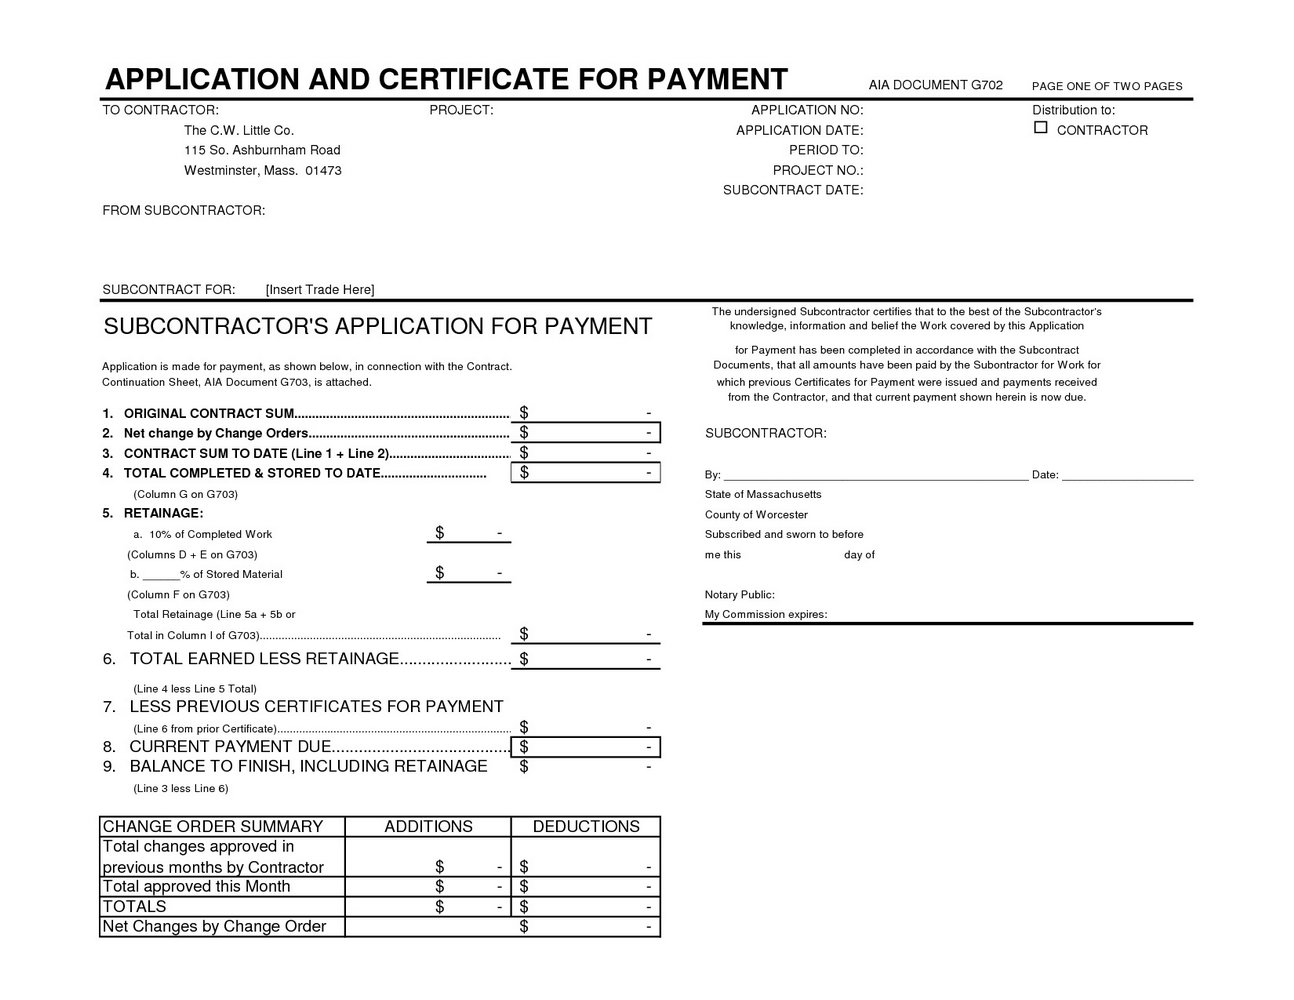 Aia Form G702 Instructions